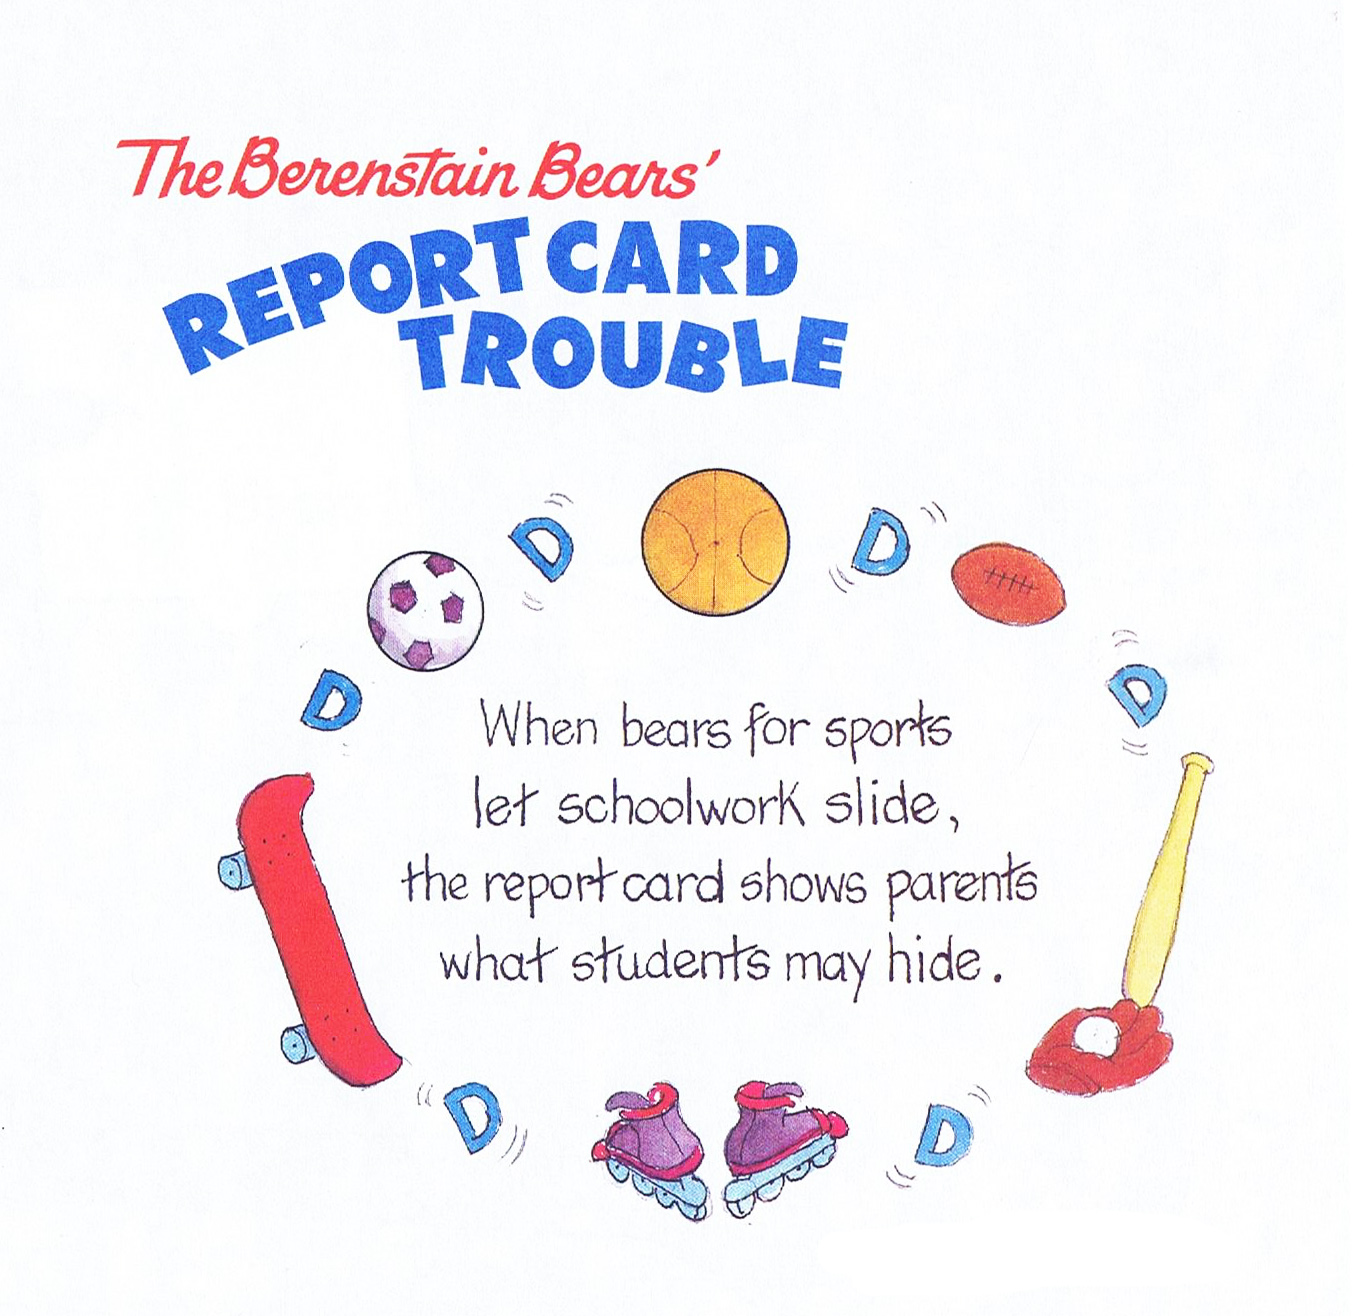 Report Card Trouble